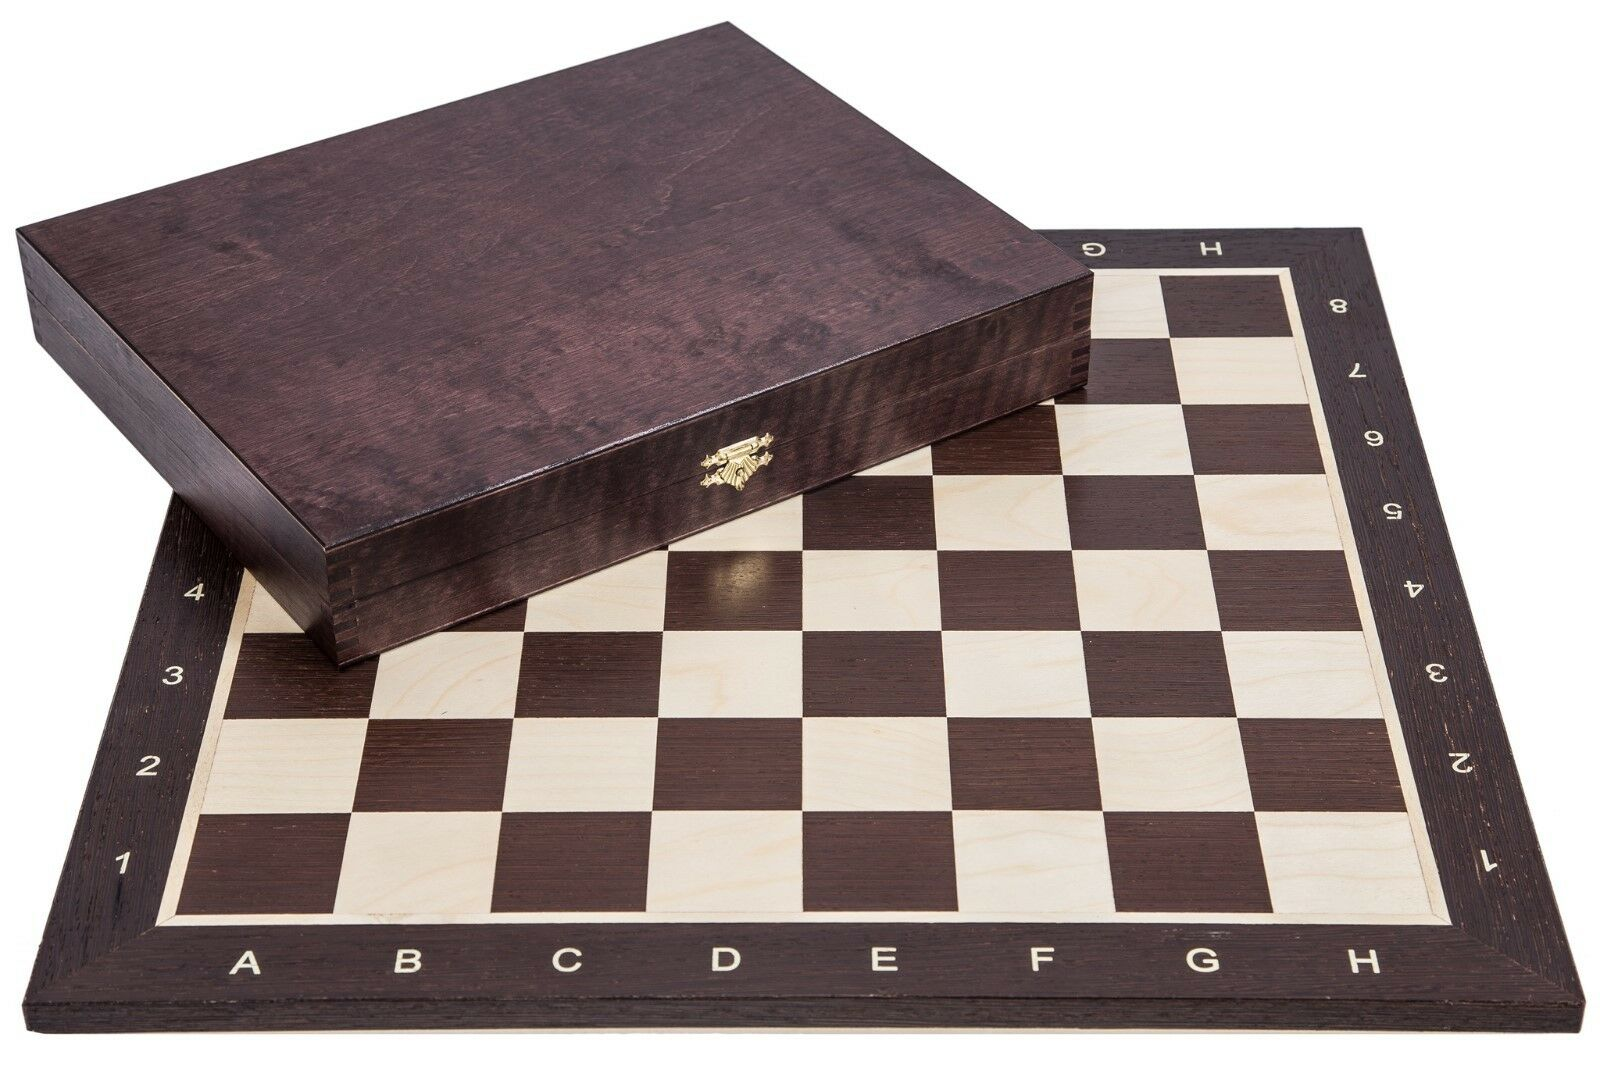 SQUARE - Pro Wooden Chess Set No. 5 - WENGE LUX - Chessboard & Chess Pieces